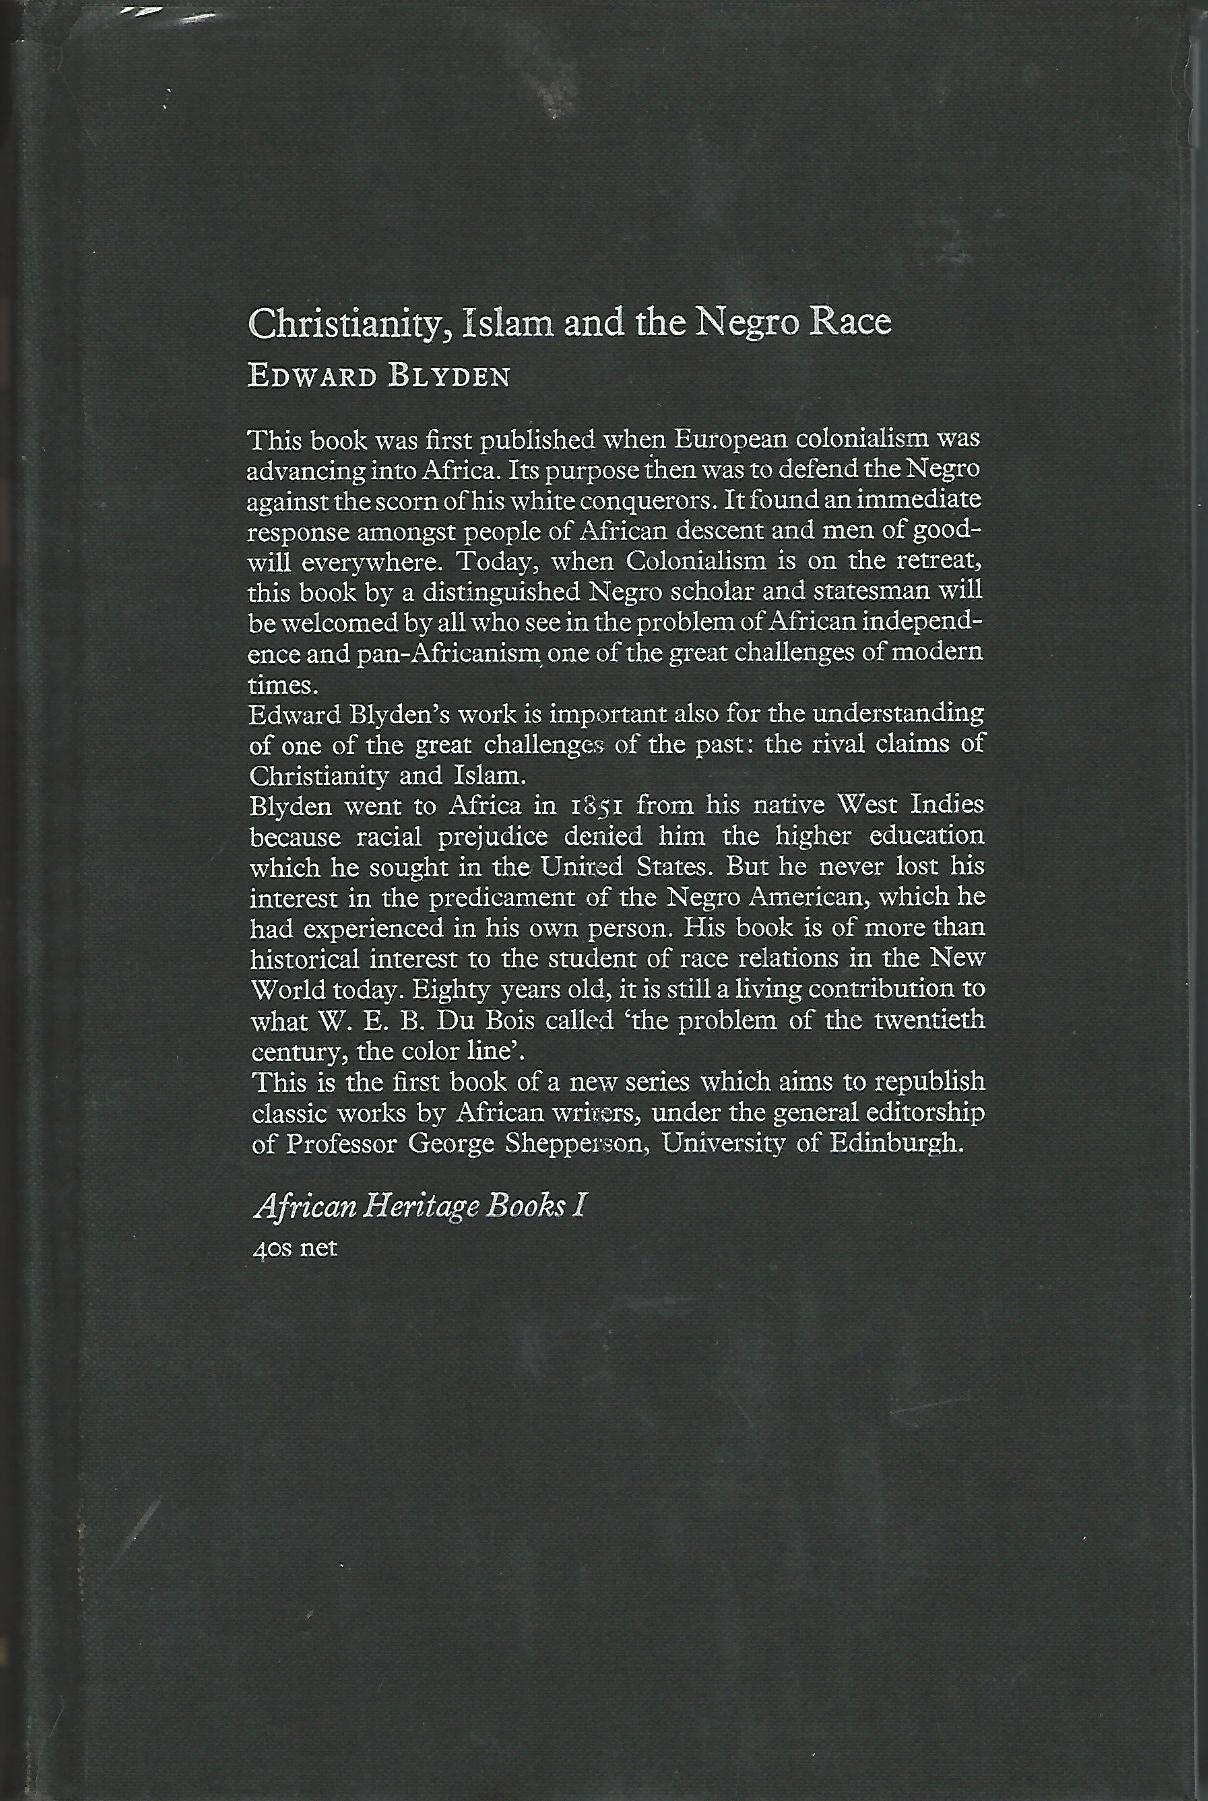 Image for Christianity, Islam and the Negro Race.